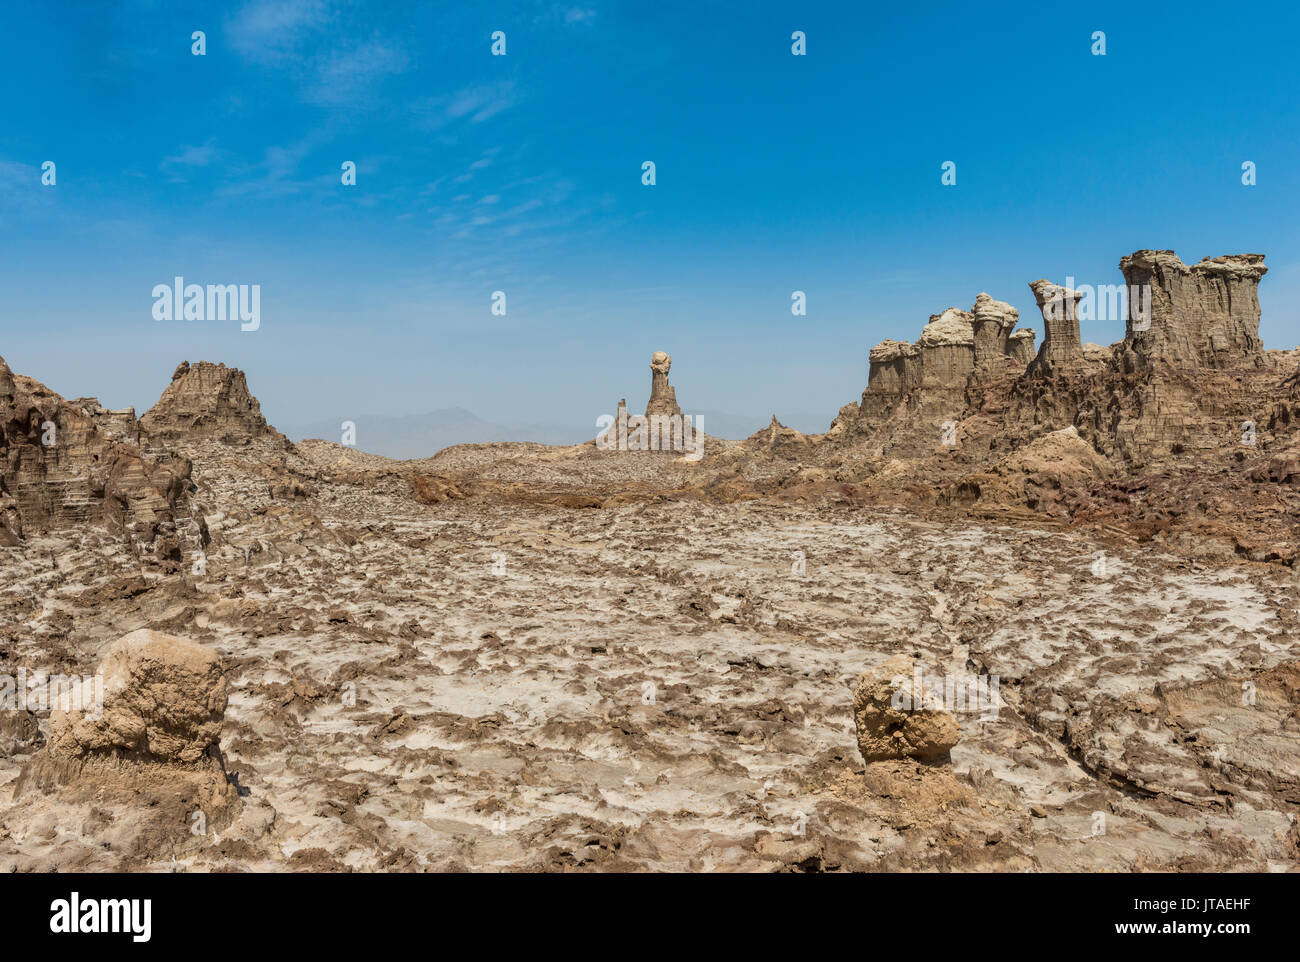 Sandstone formations in Dallol, hottest place on earth, Danakil depression, Ethiopia, Africa - Stock Image